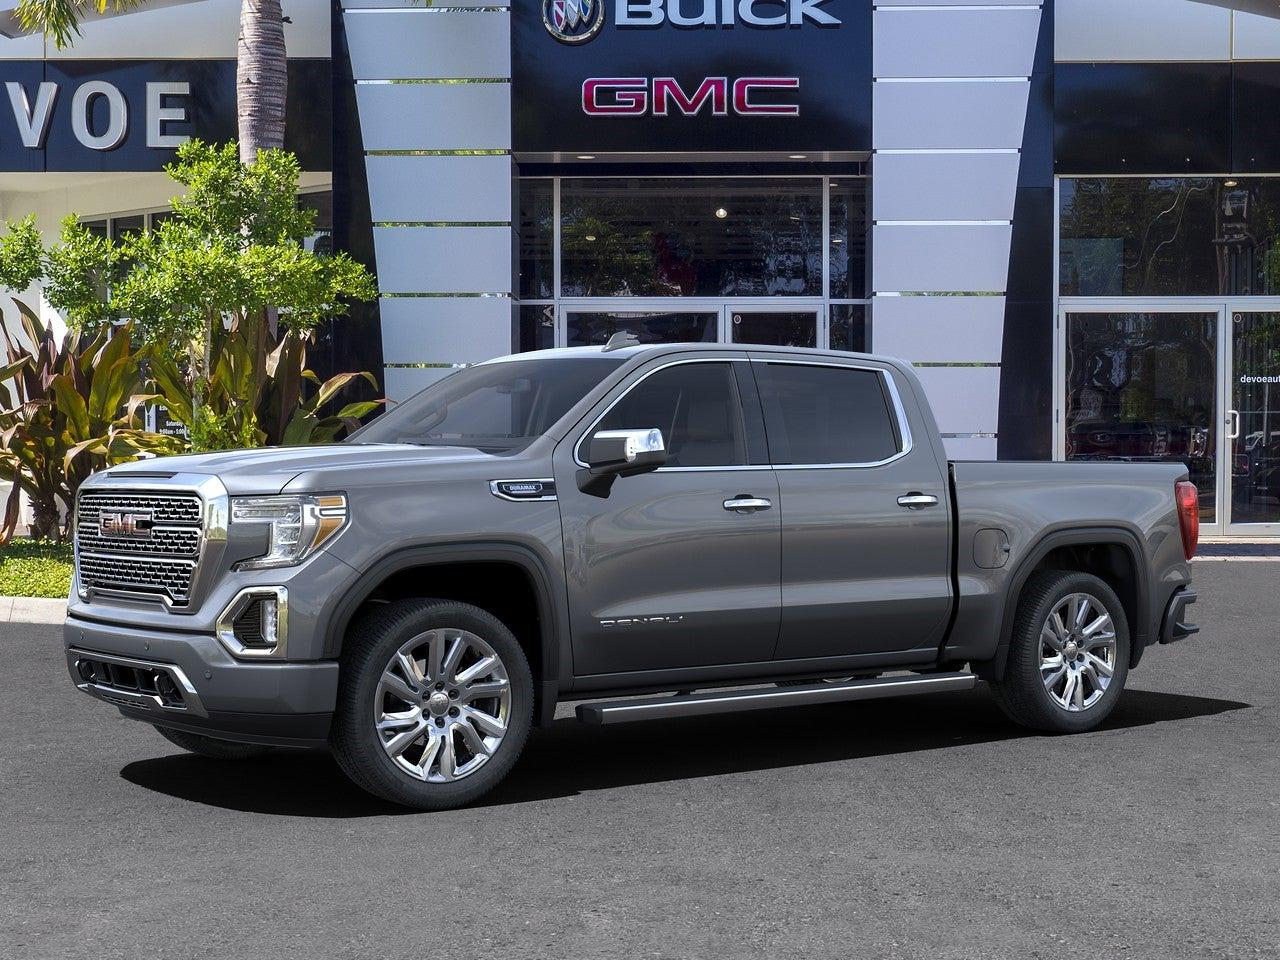 2021 GMC Sierra 1500 Crew Cab 4x2, Pickup #T21147 - photo 4